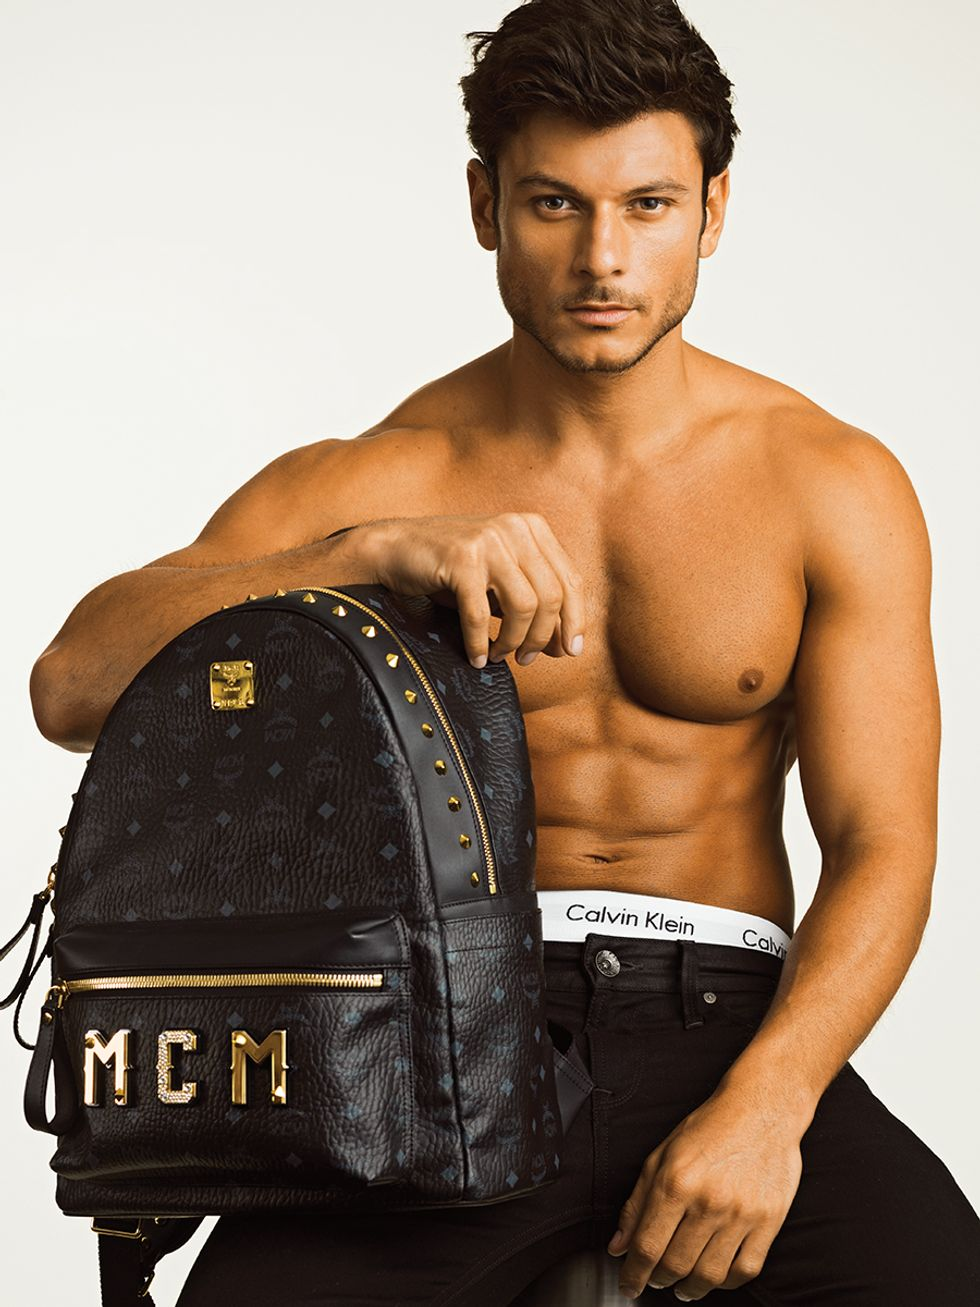 #MCM X MCM: Meet Our Favorite Shirtless Hunk and Our Favorite Backpack